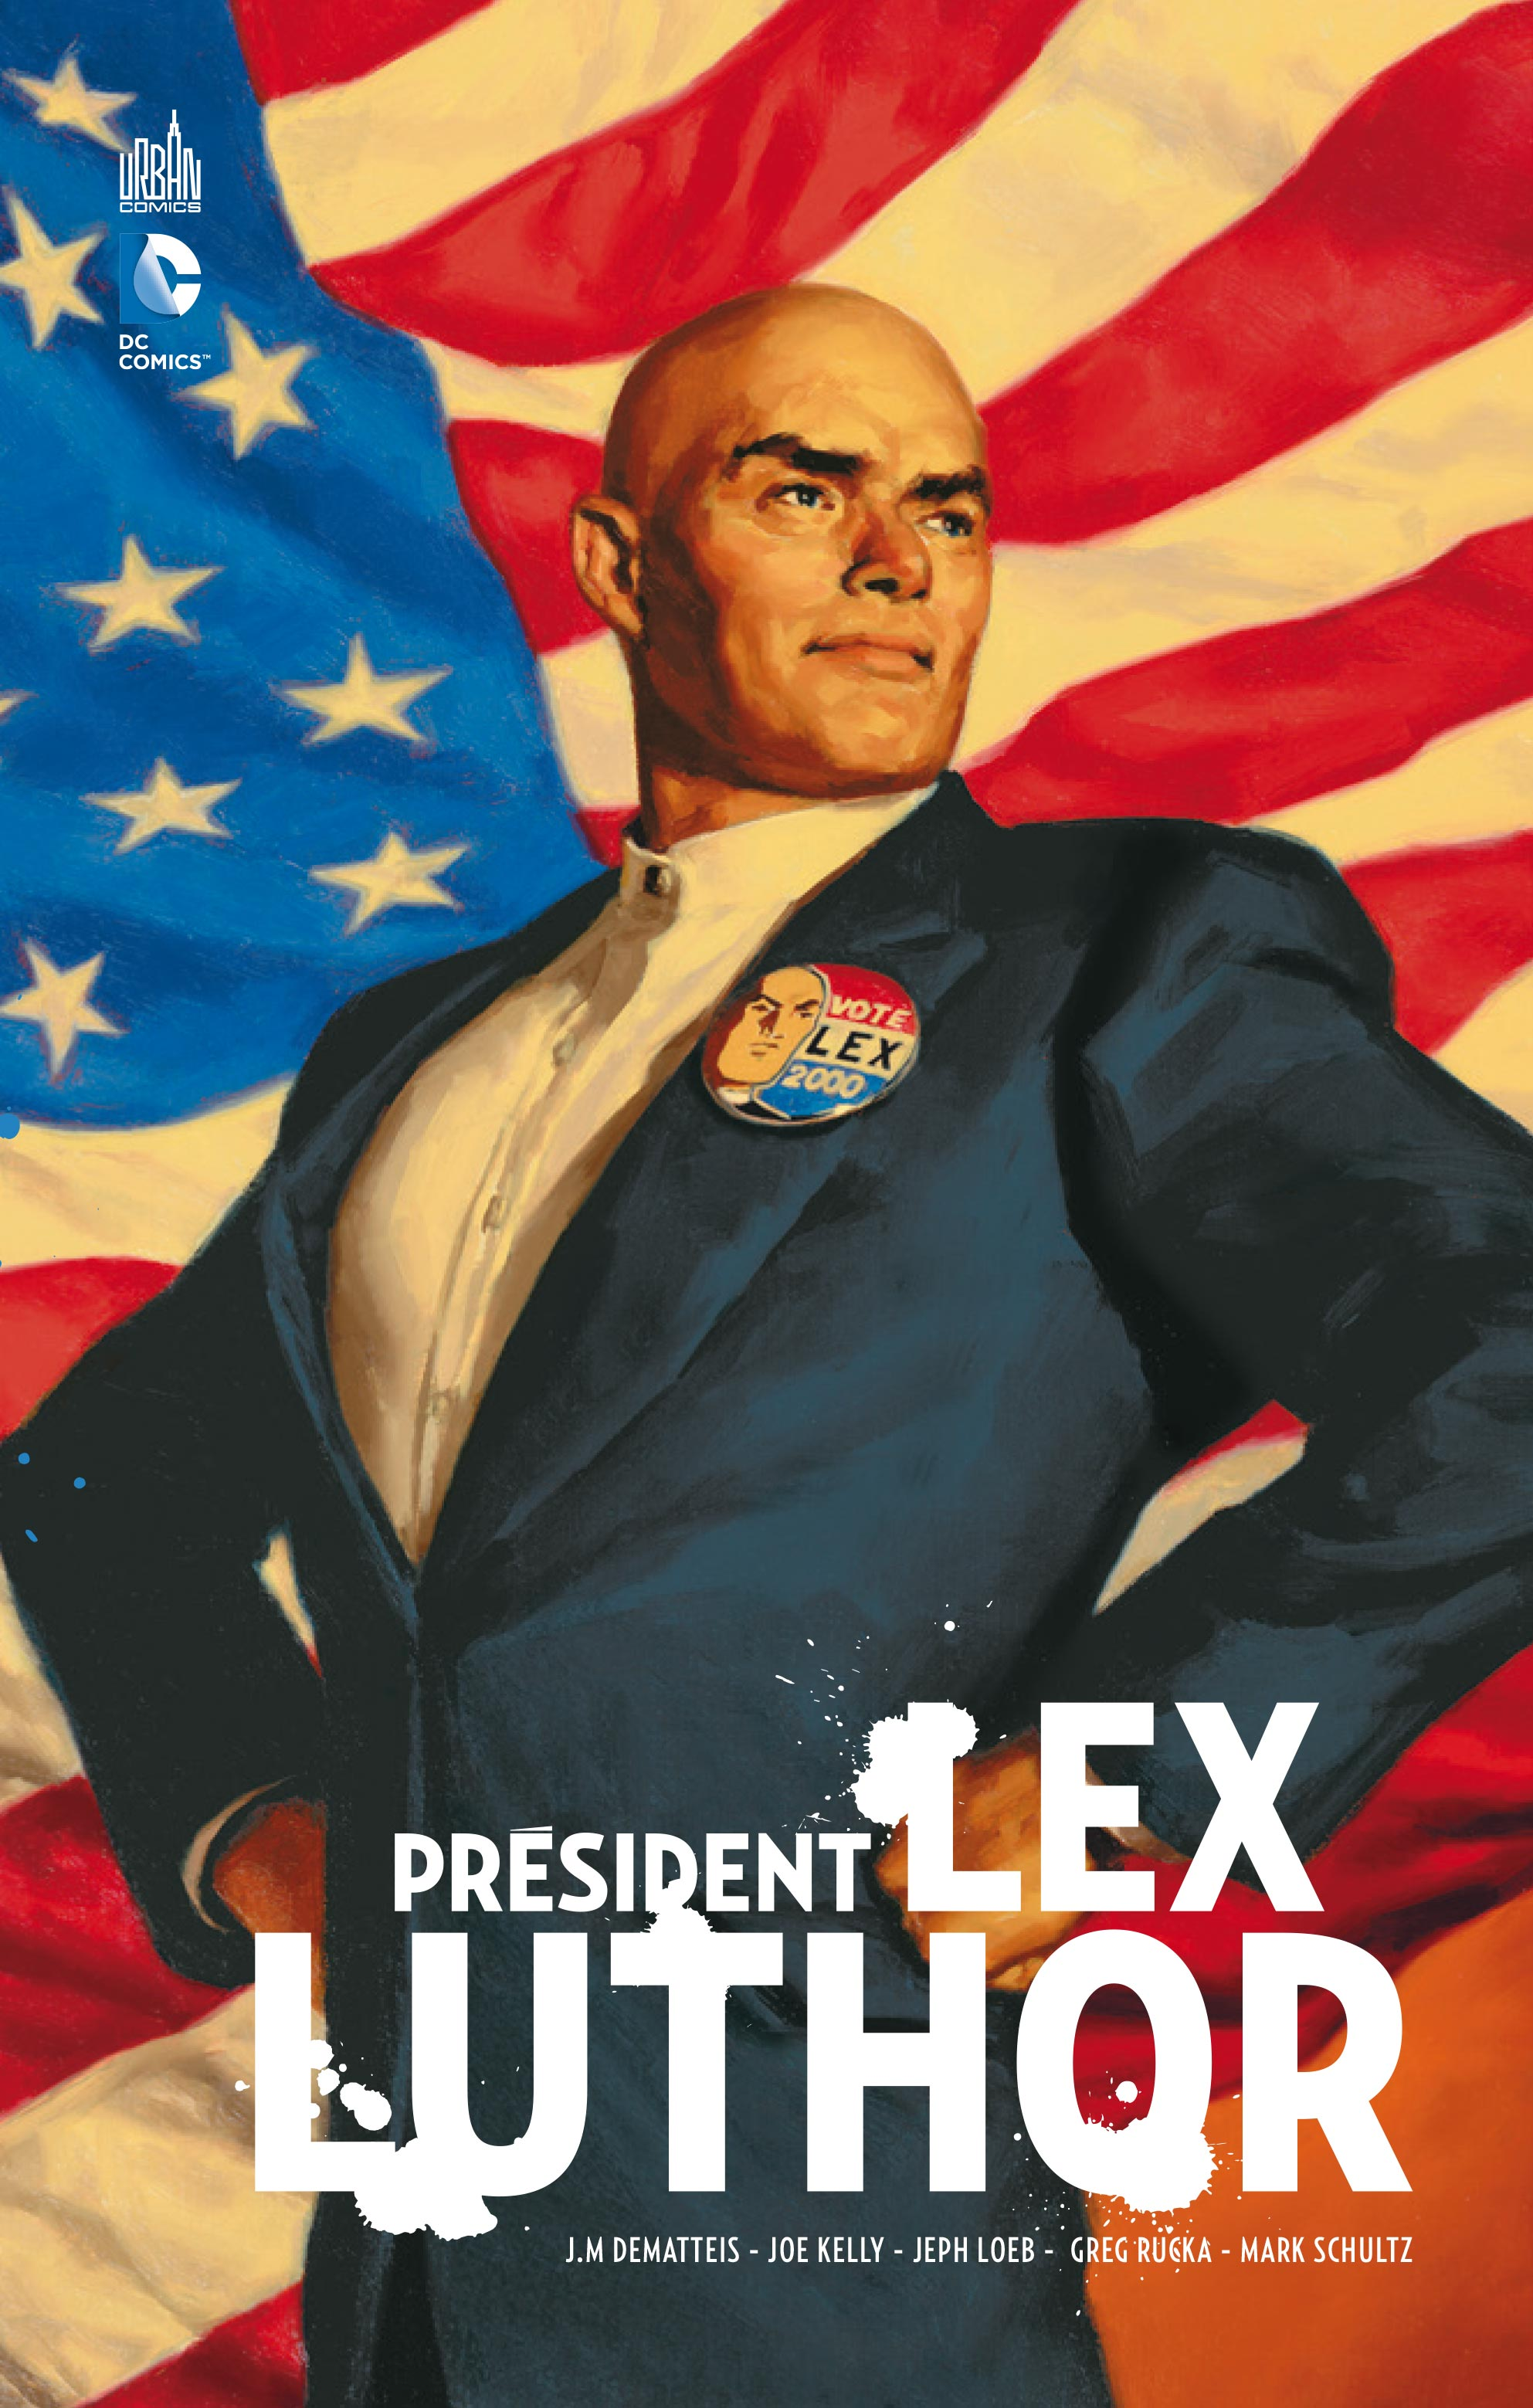 [Preview VF] Président Lex Luthor | DCPlanet.fr